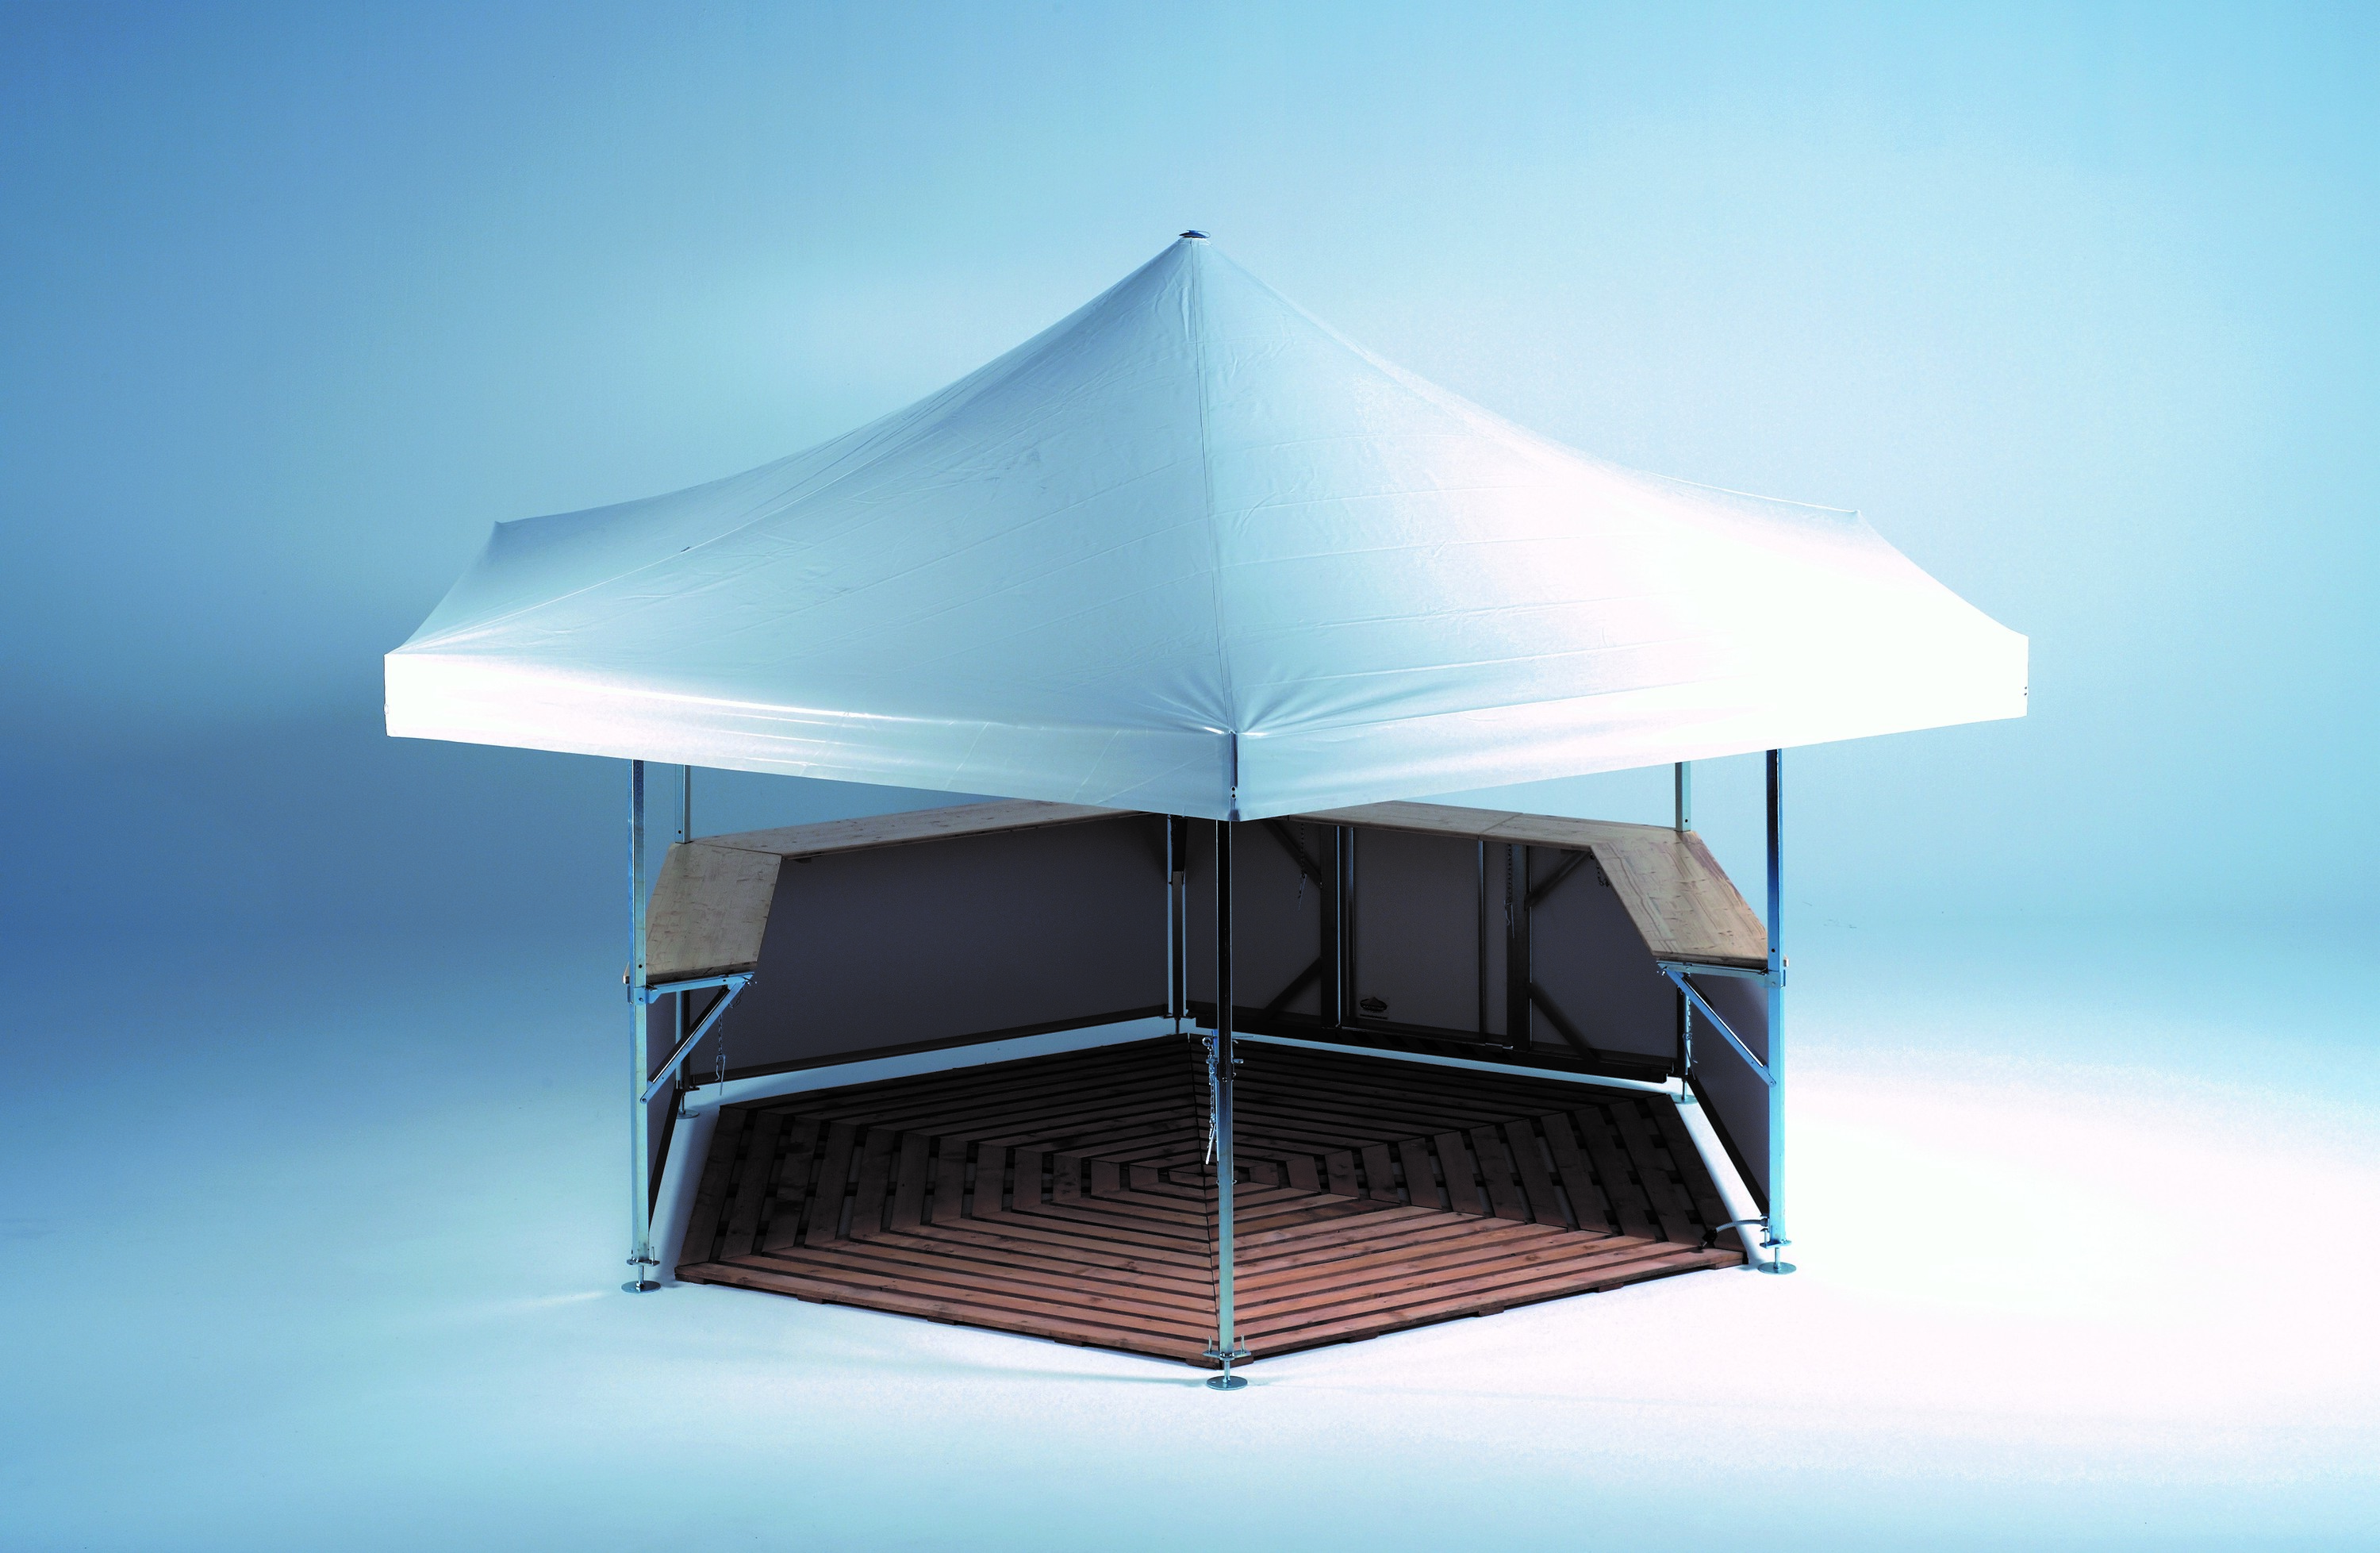 <p>Event, Mobile &amp; Stadia Bars &#8211; Tents &amp; Marquees &#8211; Hexagonal Pavilion &#8211;</p> <p>&nbsp;</p> <p>Displaying Wooden Flooring Accessory Option</p> <p>&nbsp;</p> <p>&nbsp;</p>